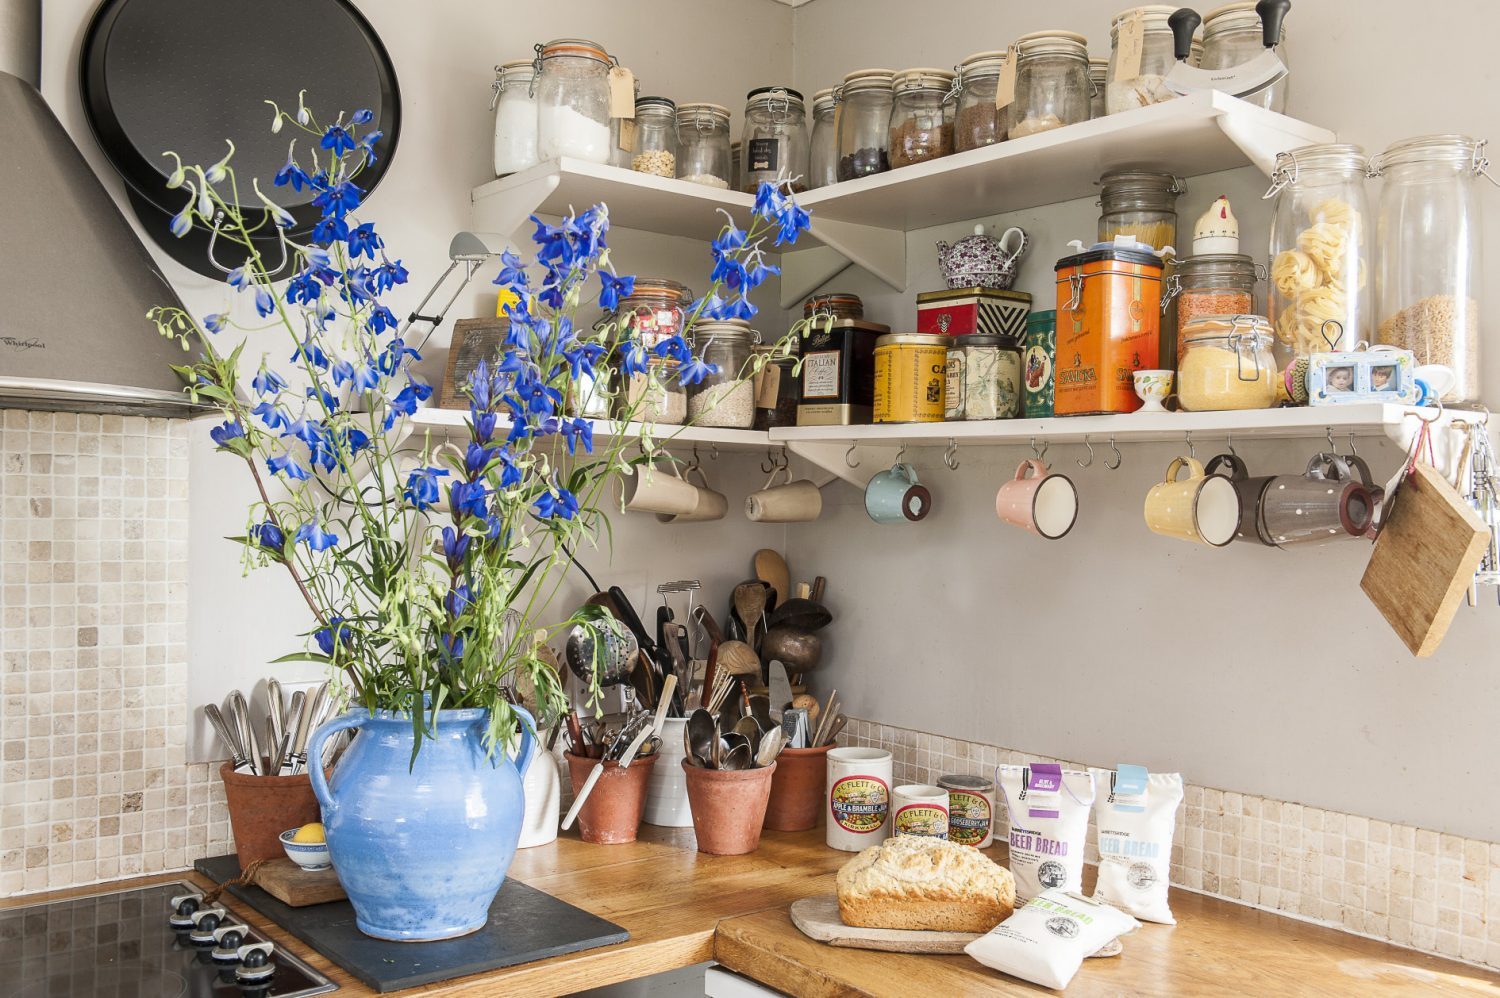 Rather than tucking them away in a cupboard, Tina's neatly labelled Kilner jars – lined up on shelves above the worksurface – ensure that dry ingredients are always to hand